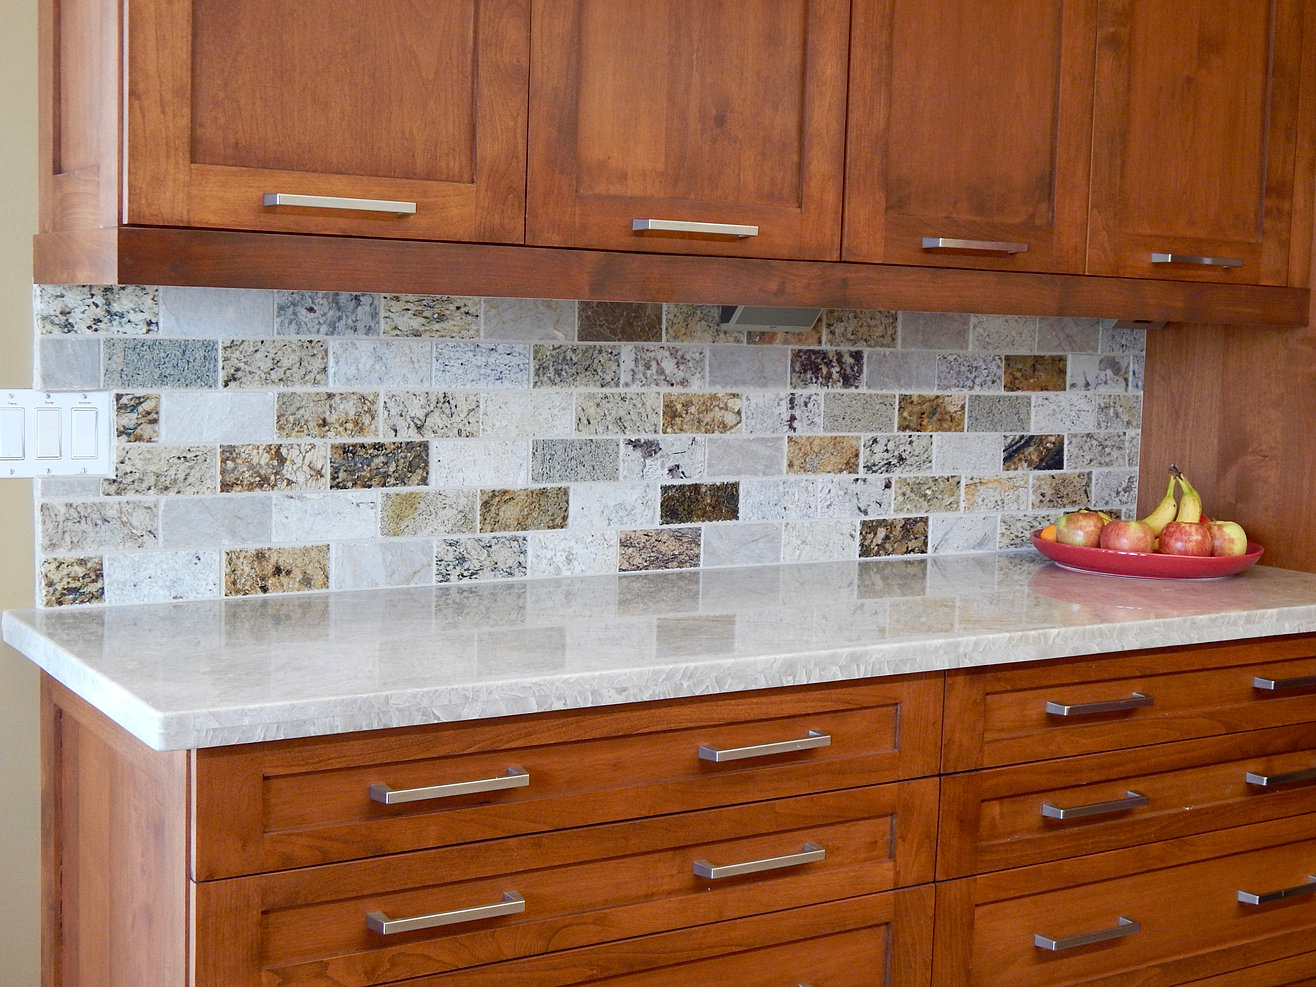 Granite Tiles For Kitchen Granite Tiles For Kitchen Granite Tiles Kitchen Black Tiled